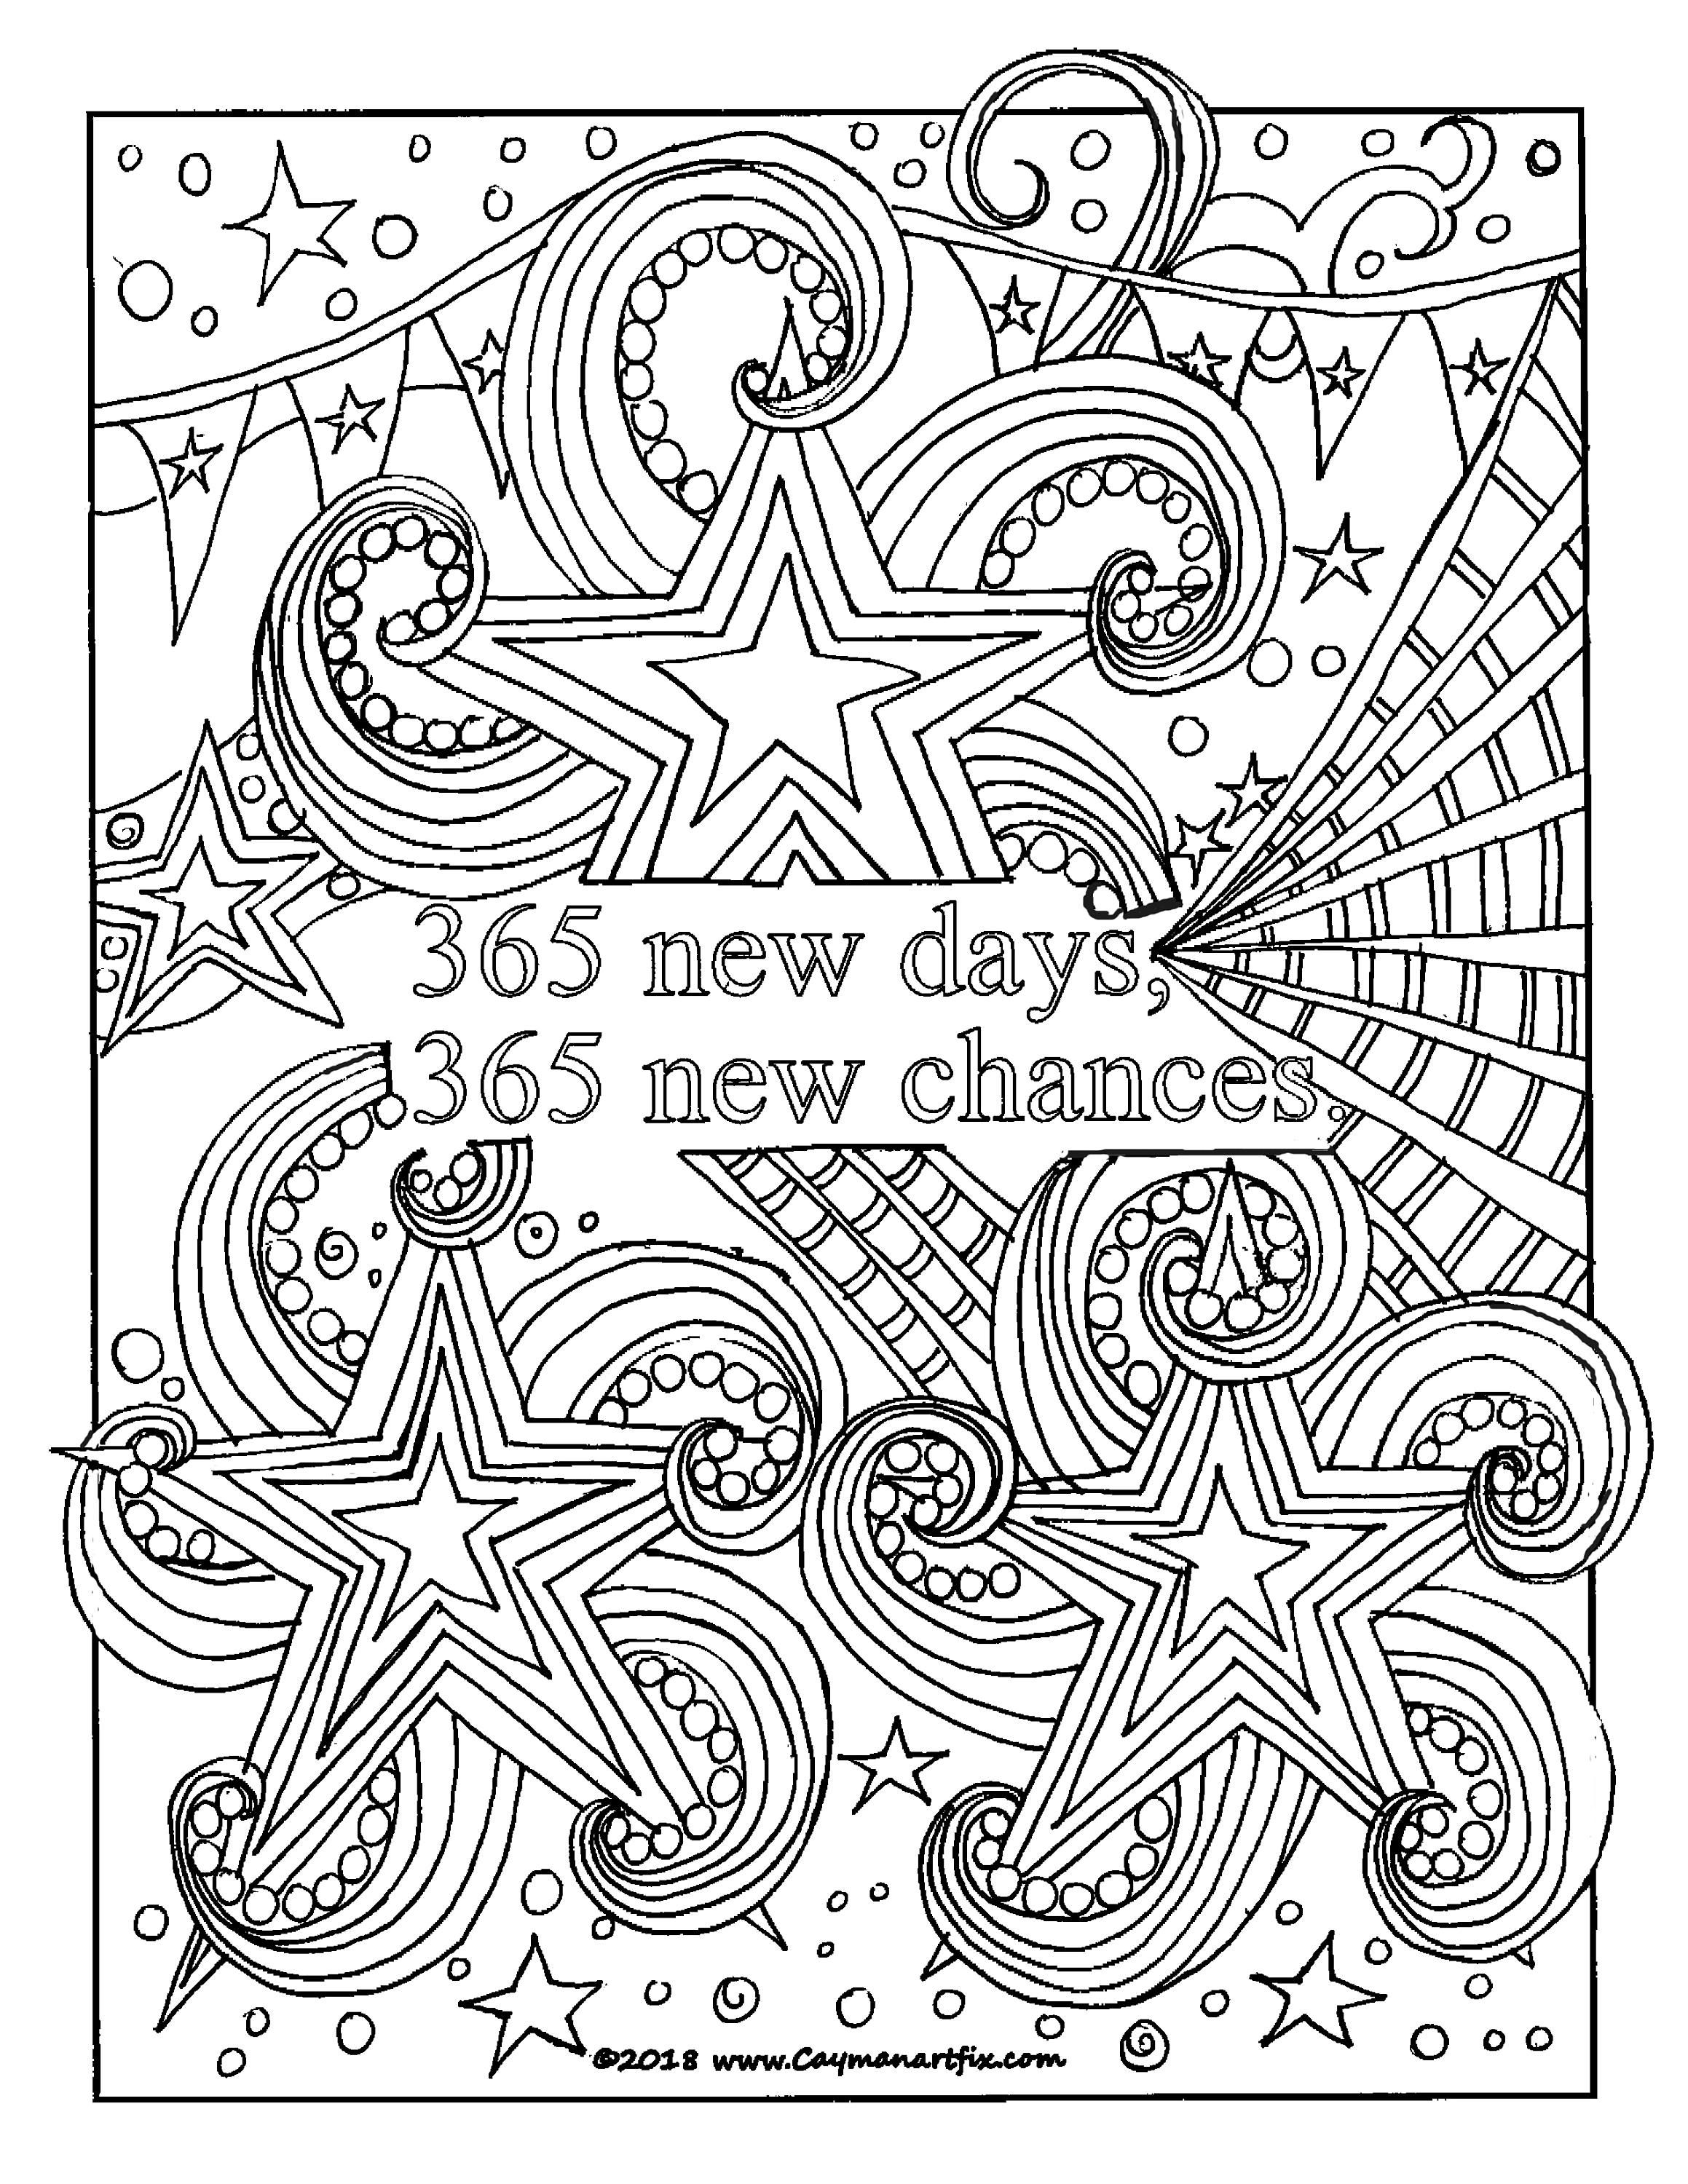 Inspirational quote coloring page, motivational adult